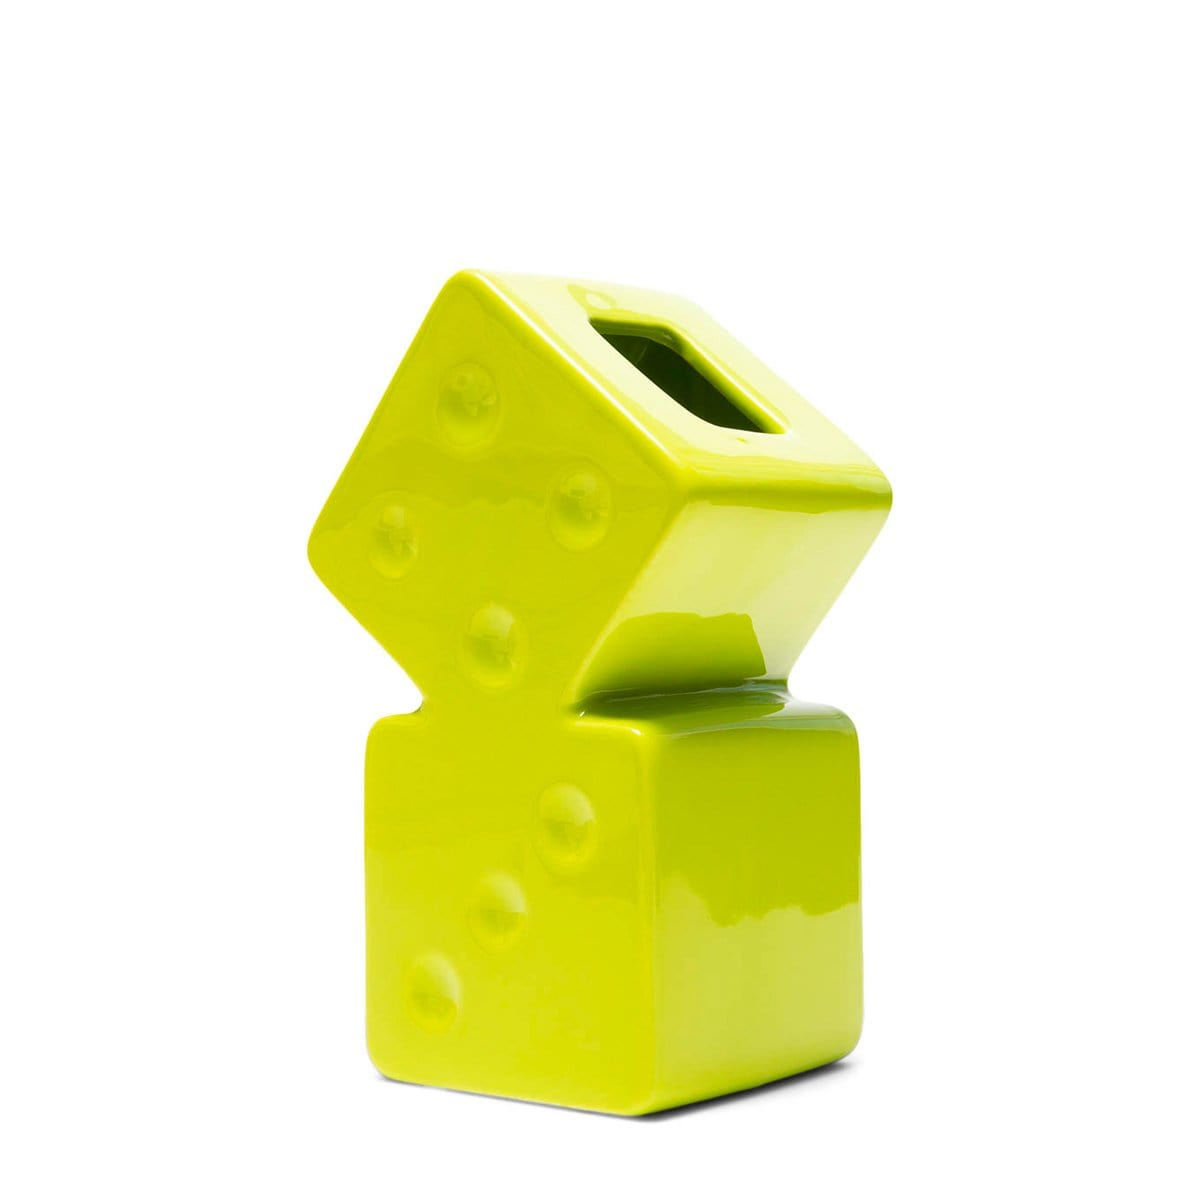 Stüssy Bags & Accessories LIME / O/S DICE CERAMIC VASE